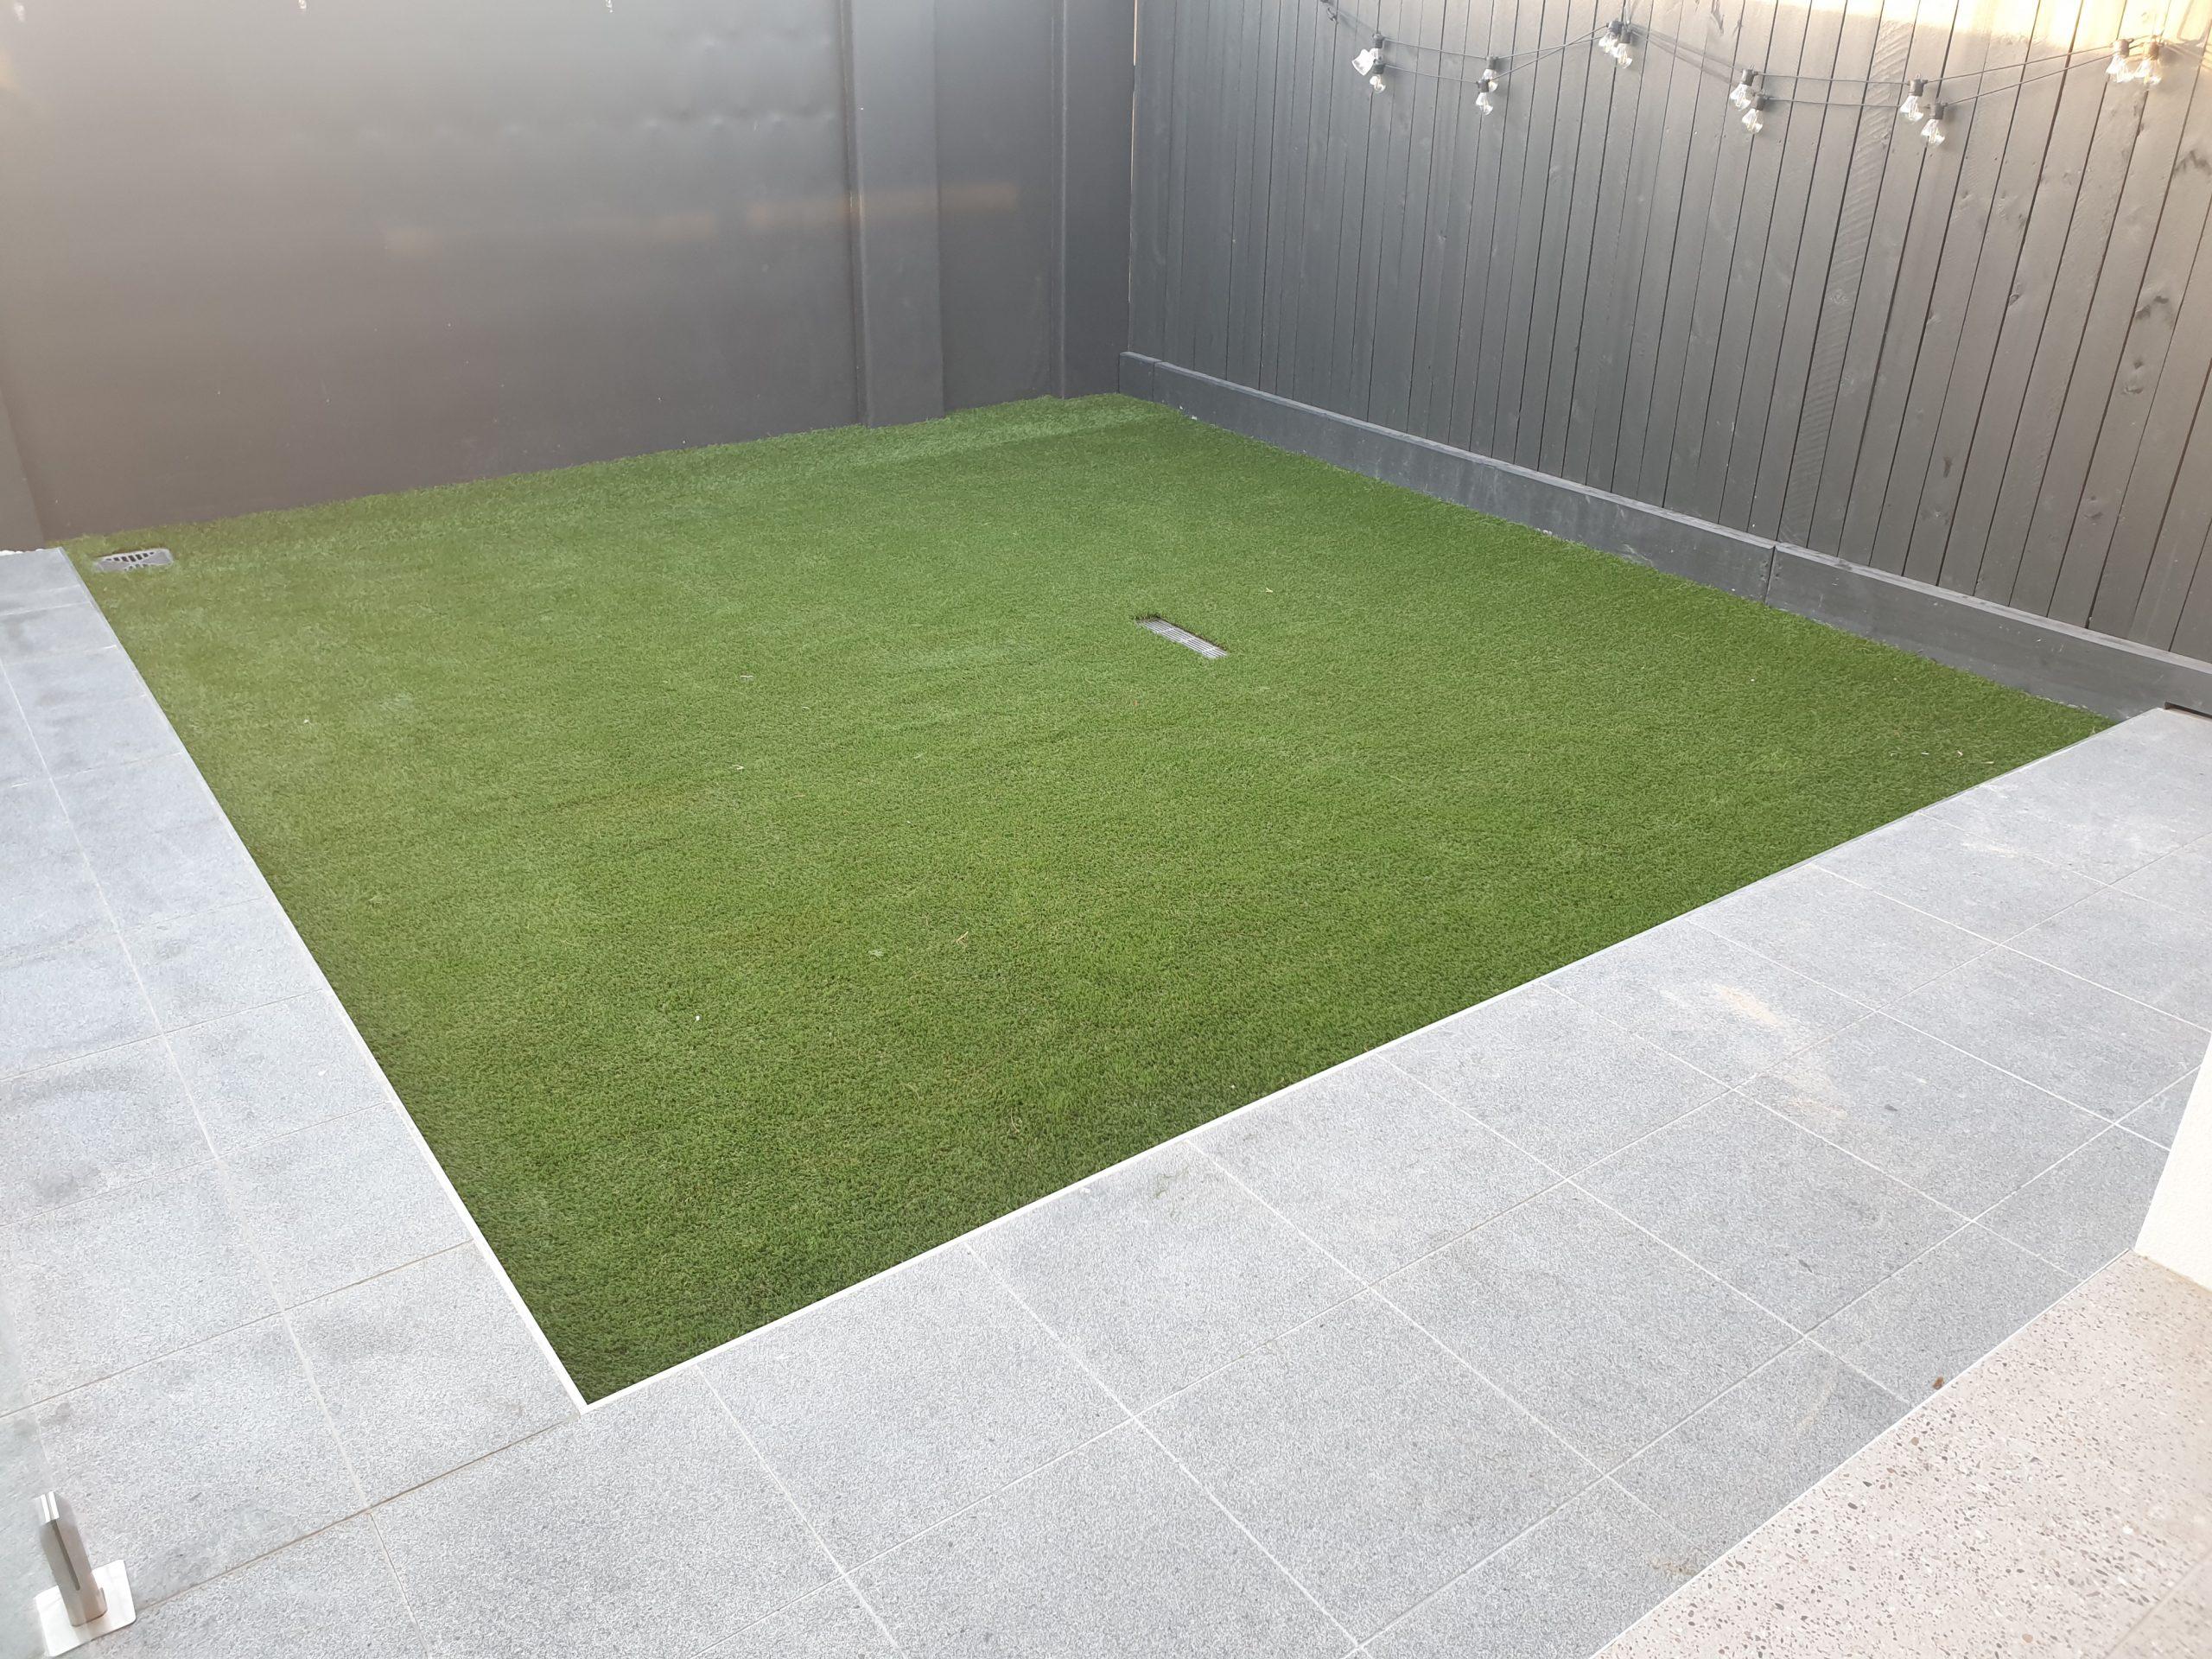 Installation of fake grass, and paving